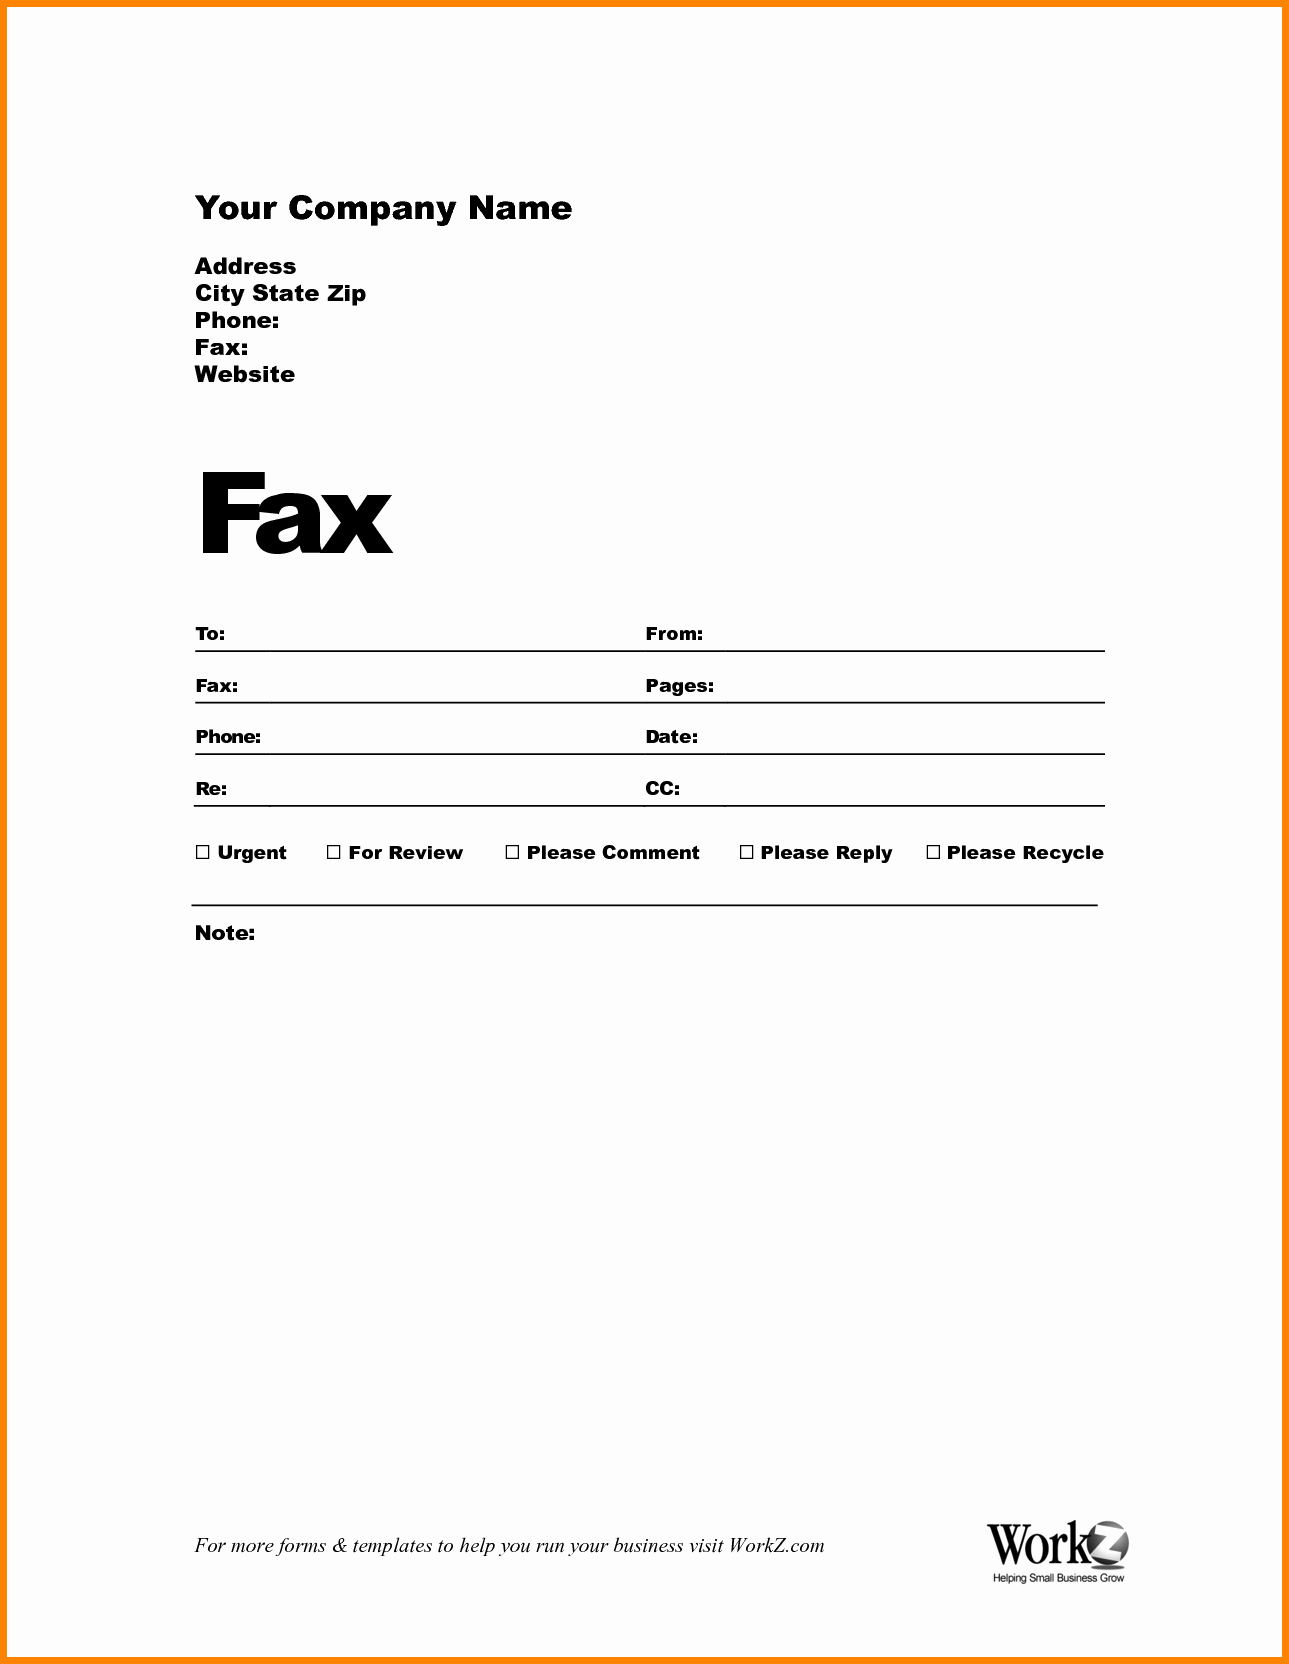 Fax Cover Sheet Pdf Free Elegant 7 Blank Fax Cover Sheet Template Word Best Ideas Fax